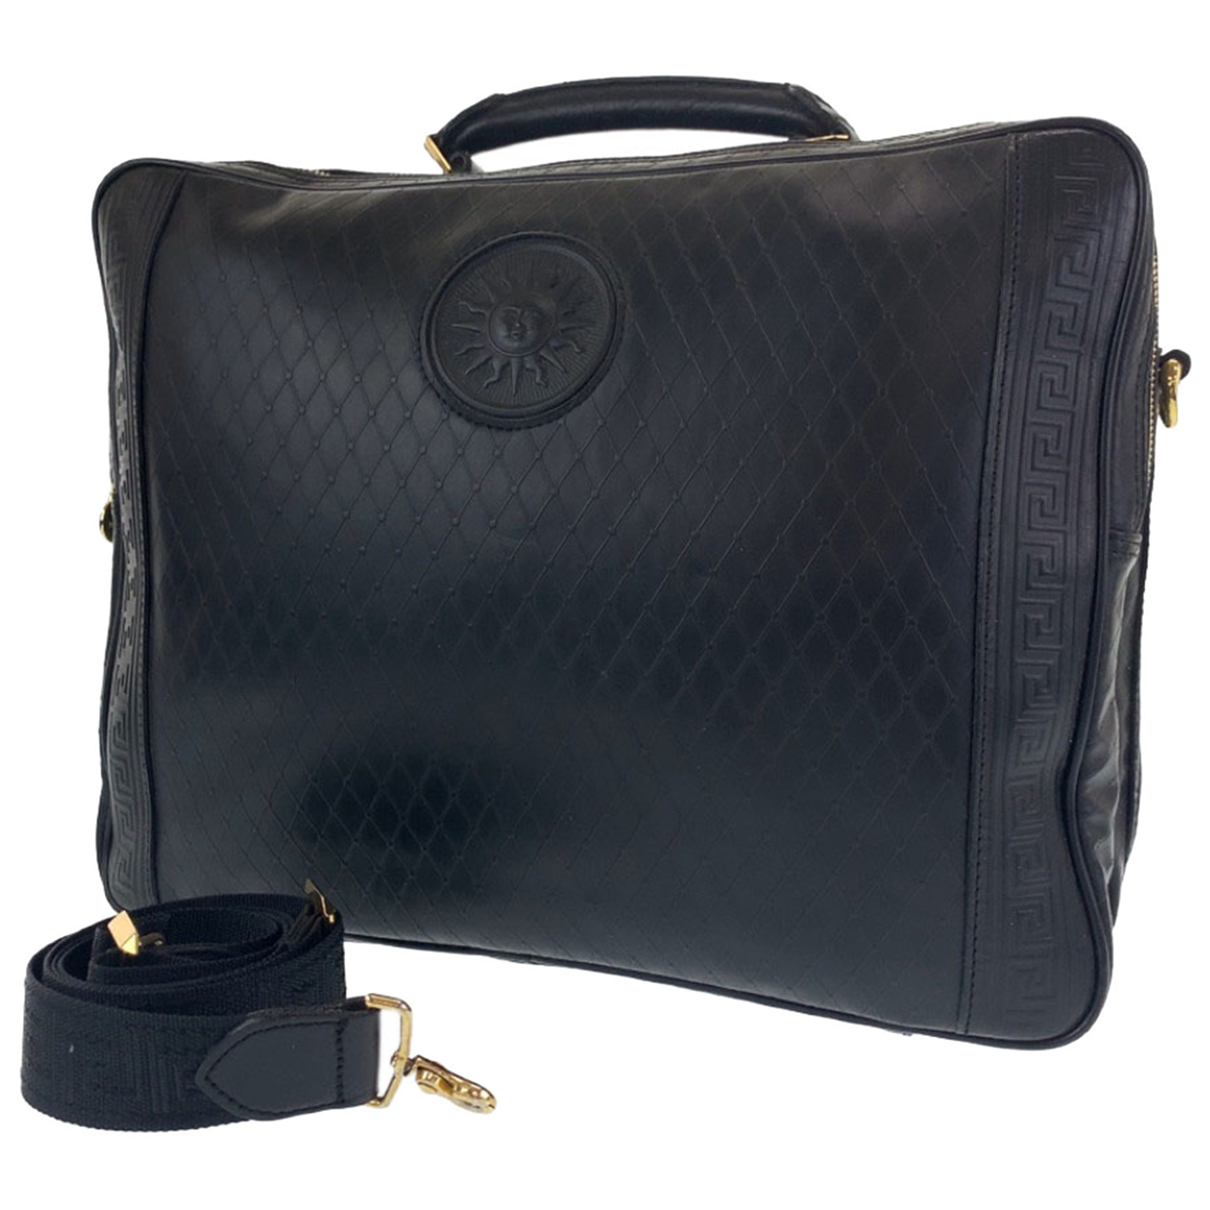 Gianni Versace N Leather bag for Men N